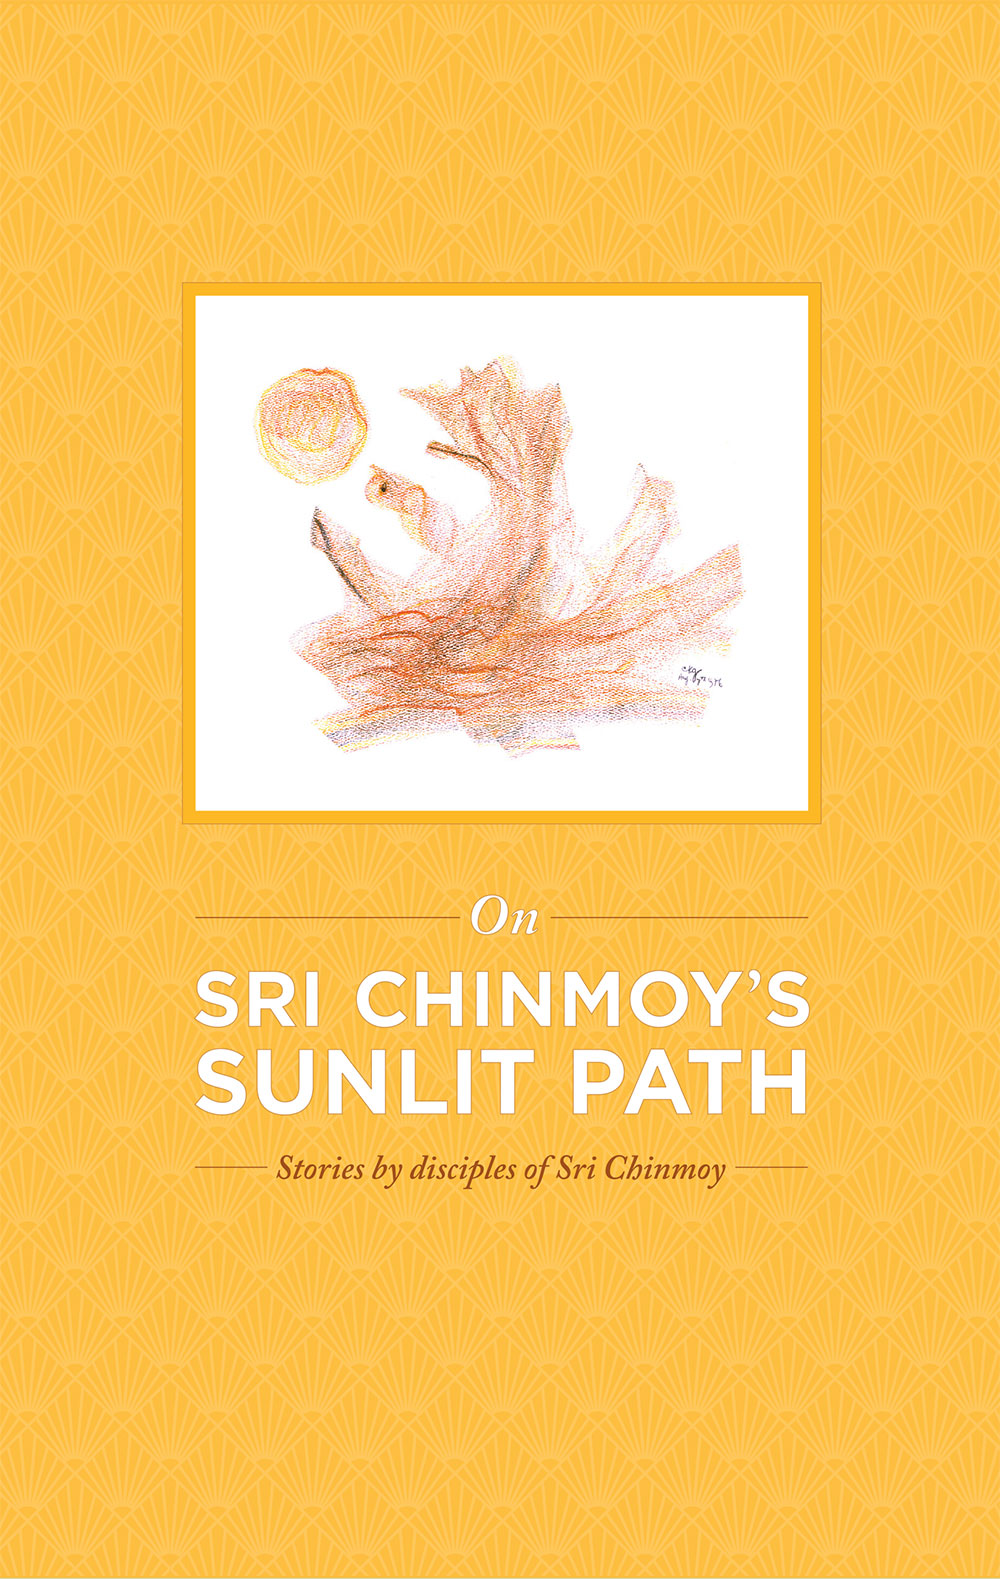 On Sri Chinmoy's Sunlit Path